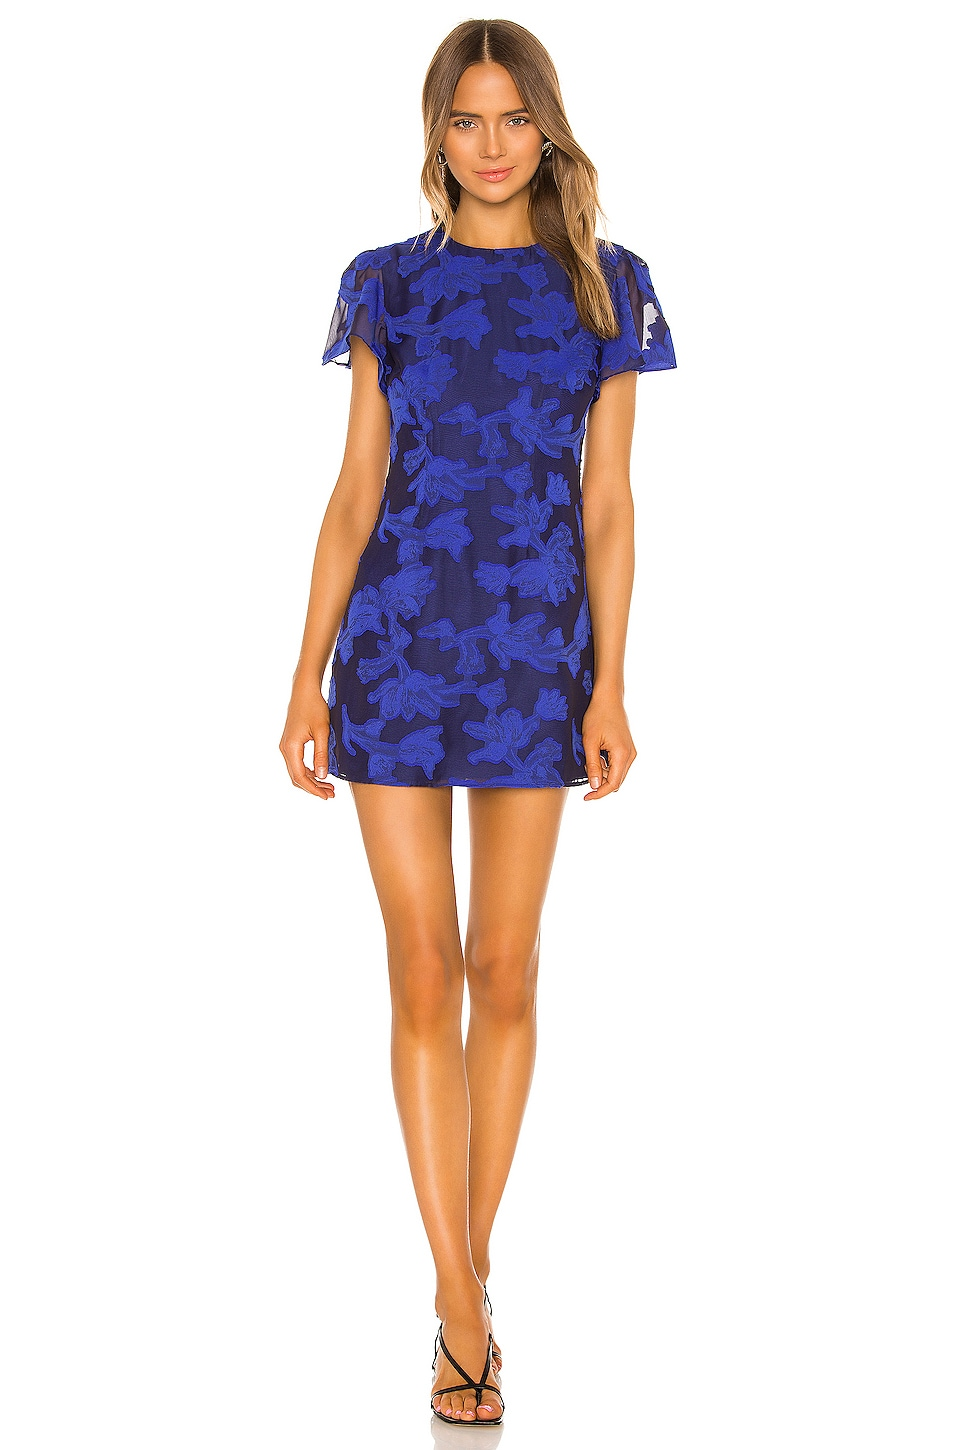 x REVOLVE Lotte Dress                   House of Harlow 1960                                                                                                                             CA$ 206.62 1